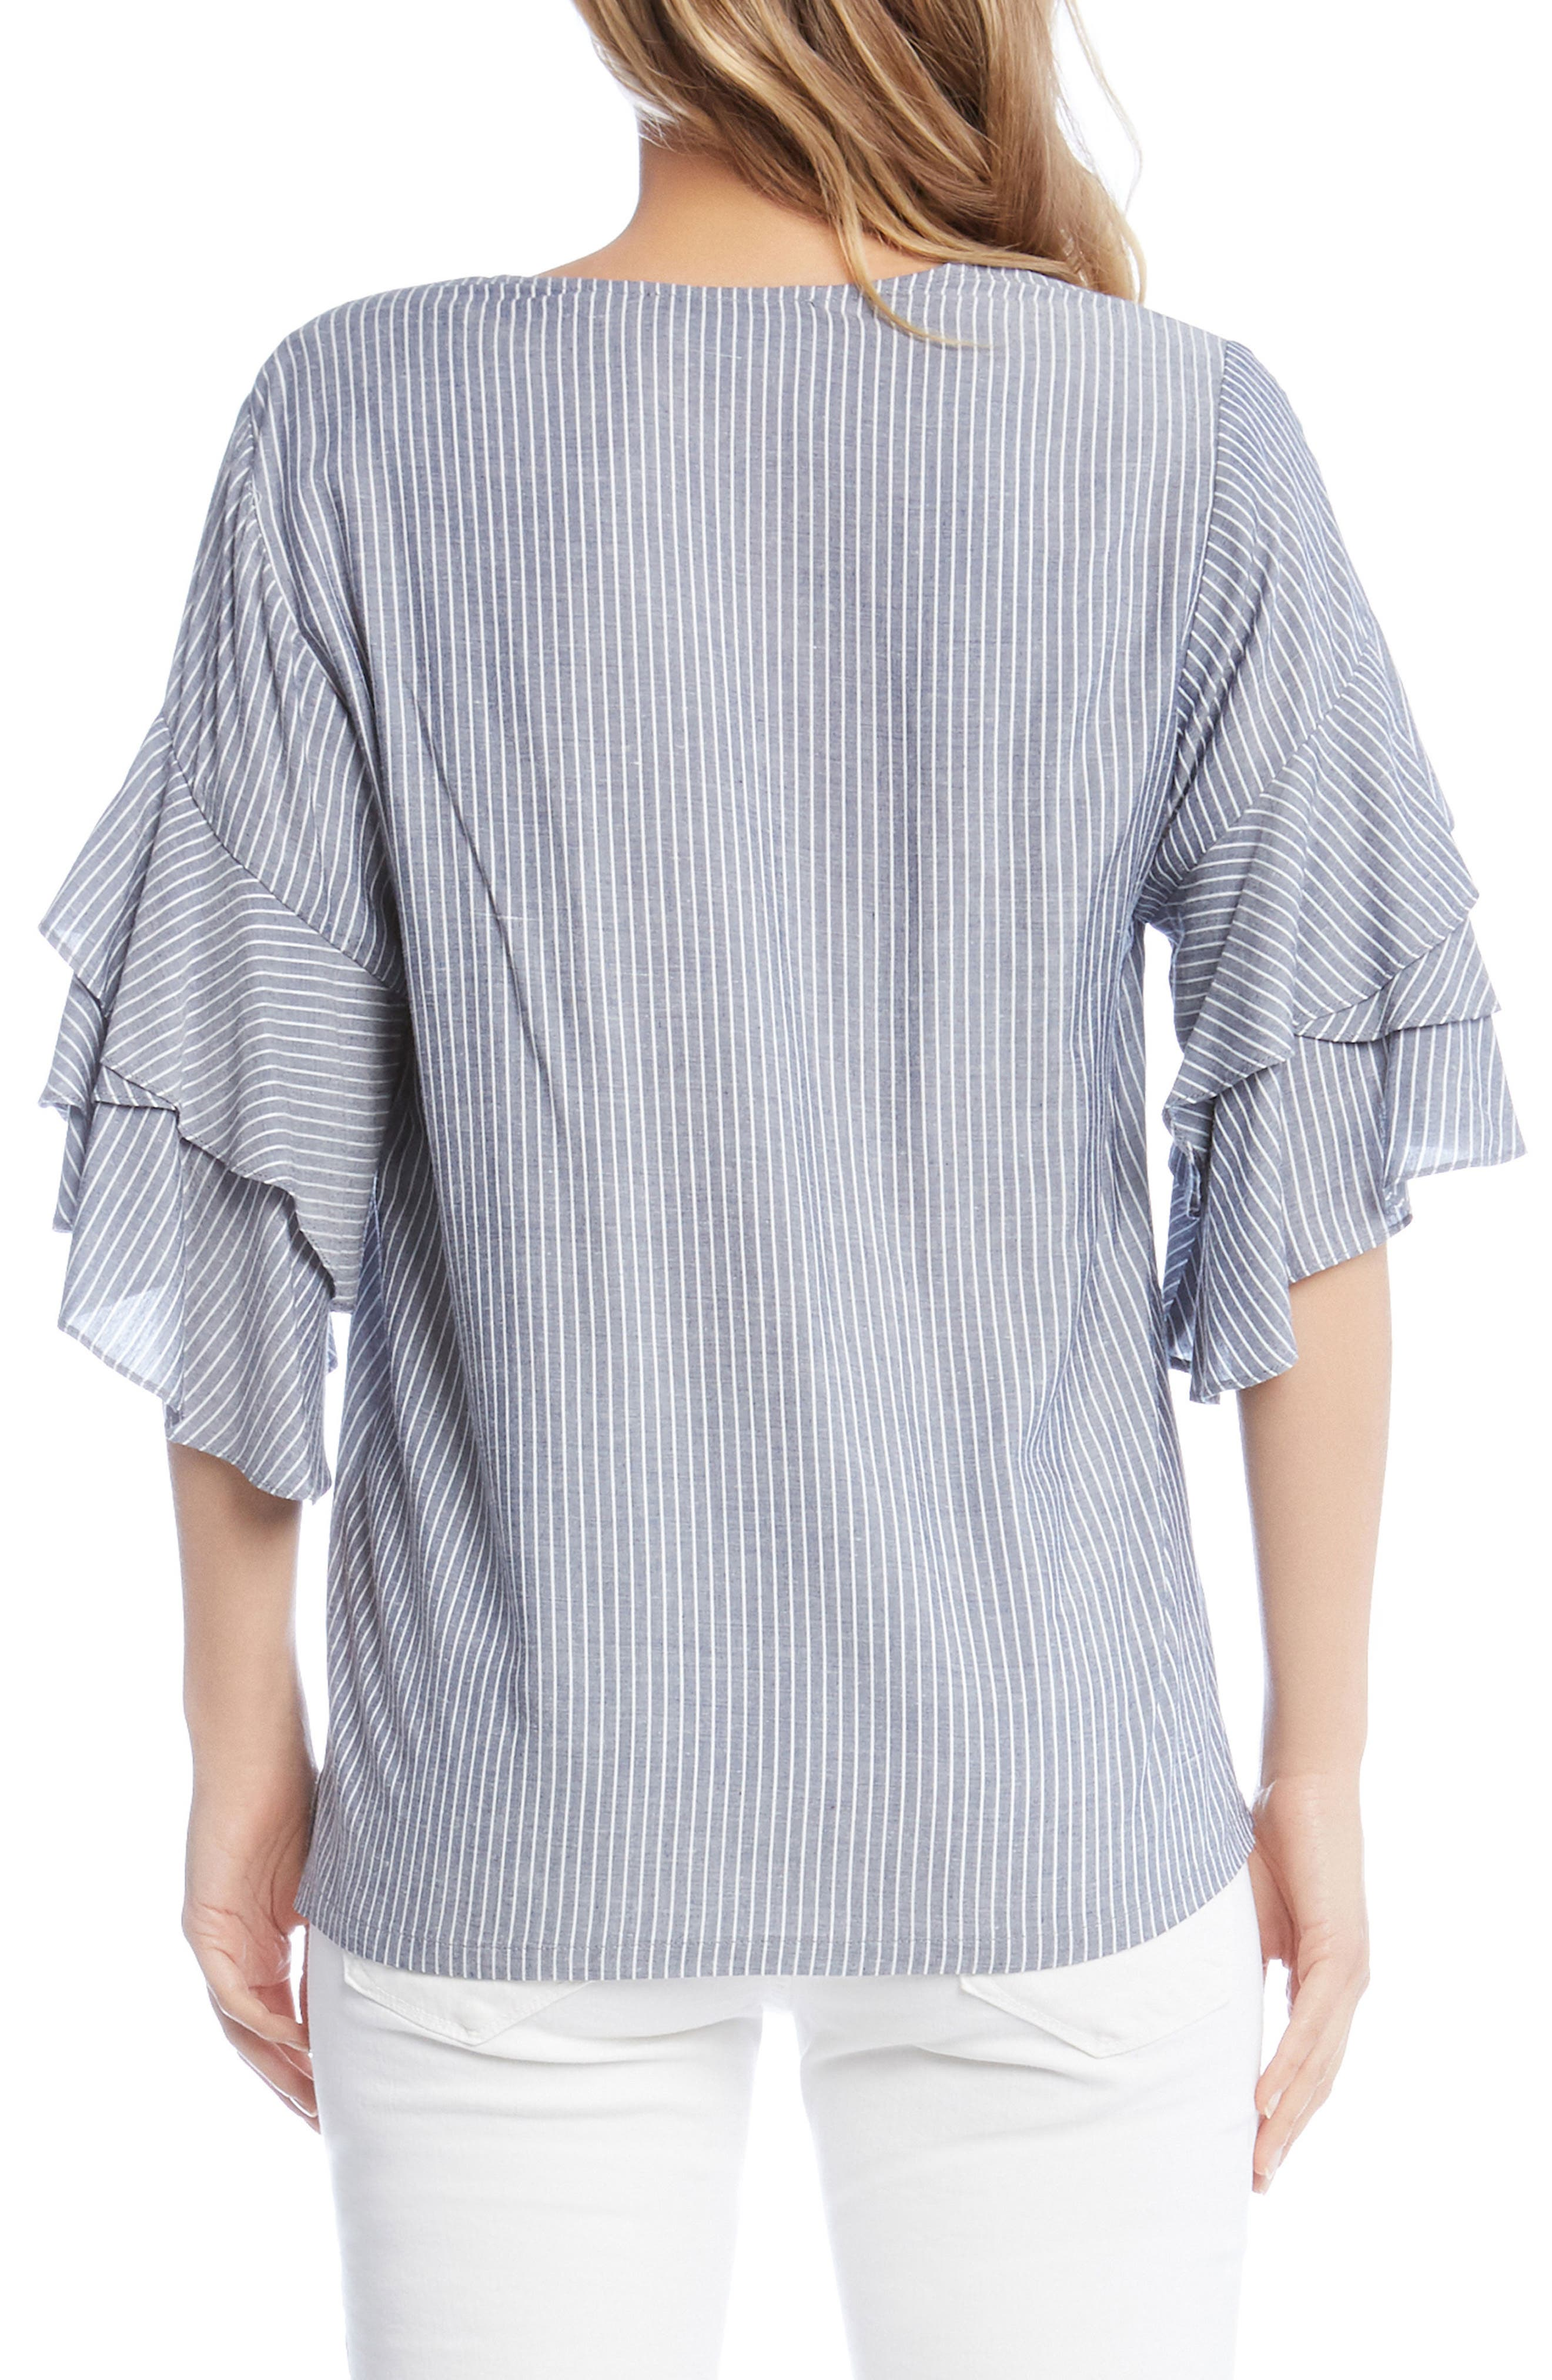 Ruffled Stripe Chambray Top,                             Alternate thumbnail 3, color,                             Striped